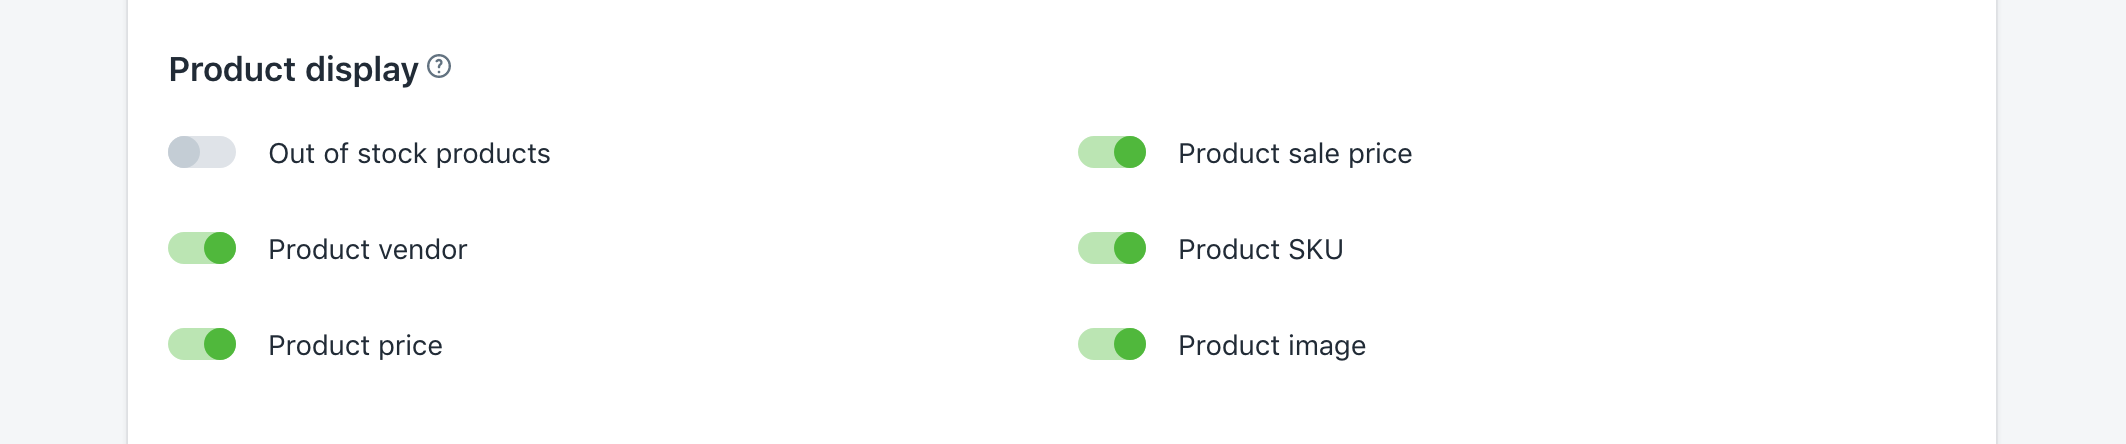 For Product vendor, Product price, Product sale price, Product SKU, and Product image, turn on/off the suitable options to enable or disable these displays in a product Instant search result.